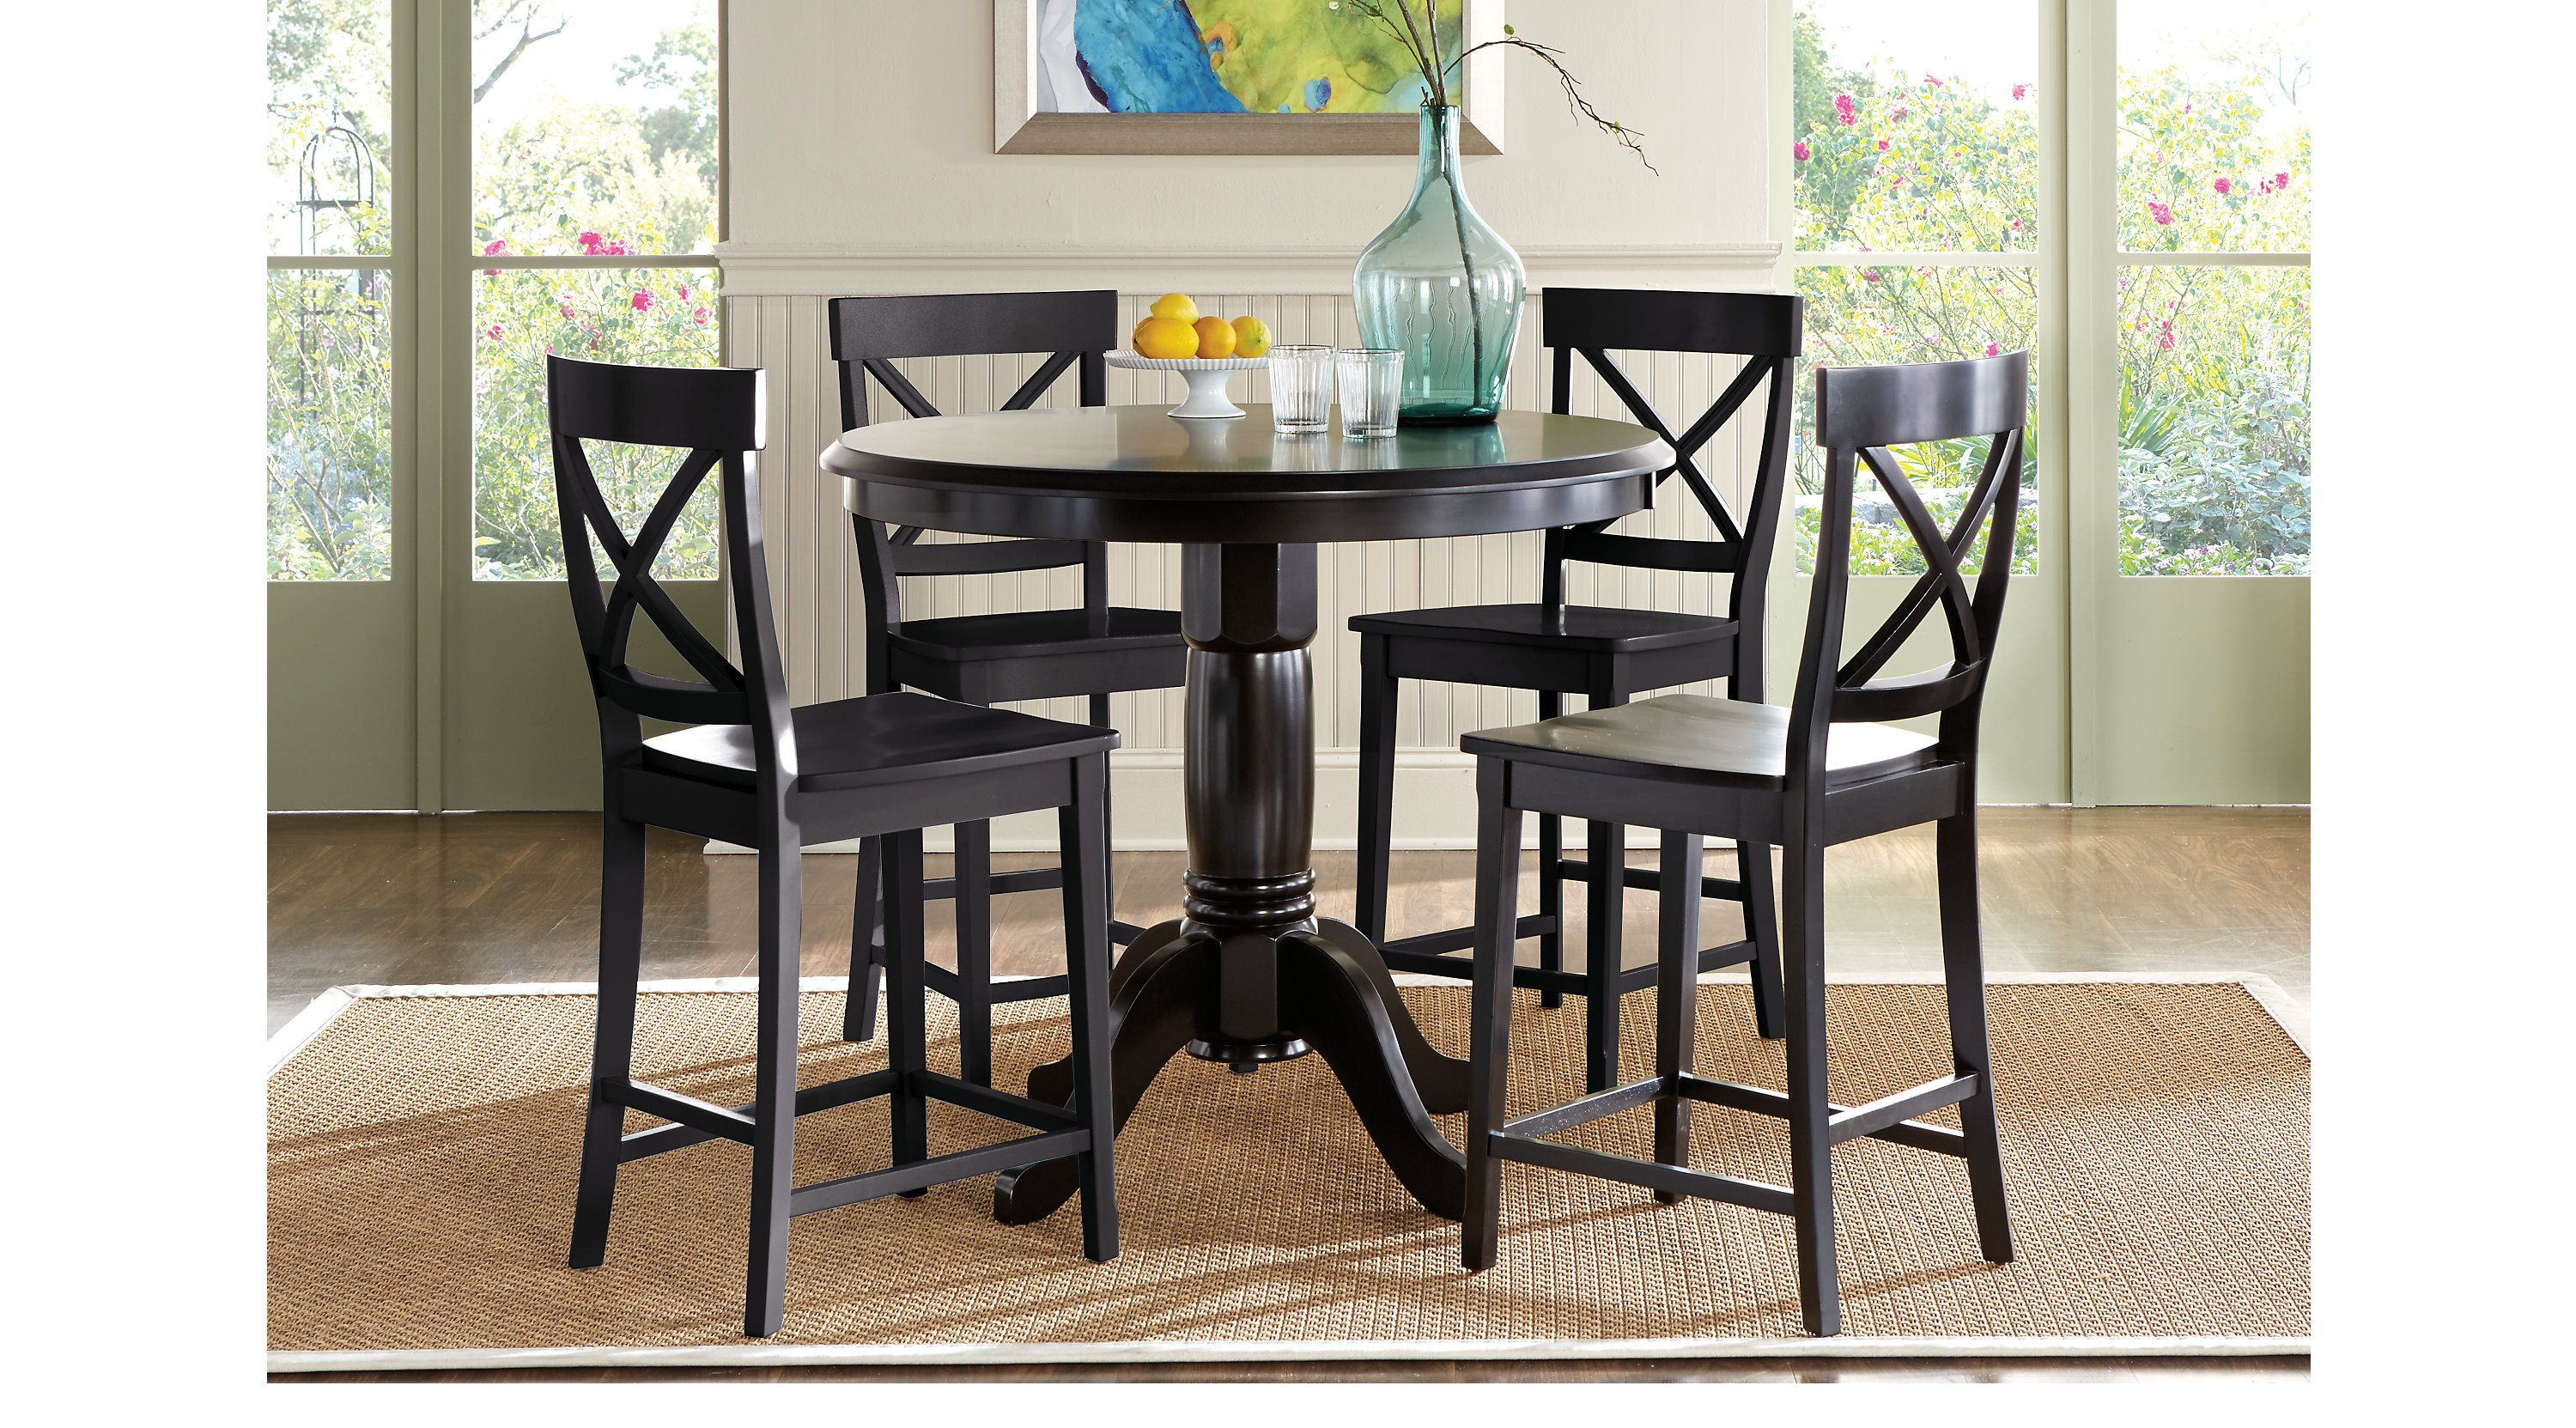 Brynwood Black 5 Pc Counter Height Dining Set X Back Stool